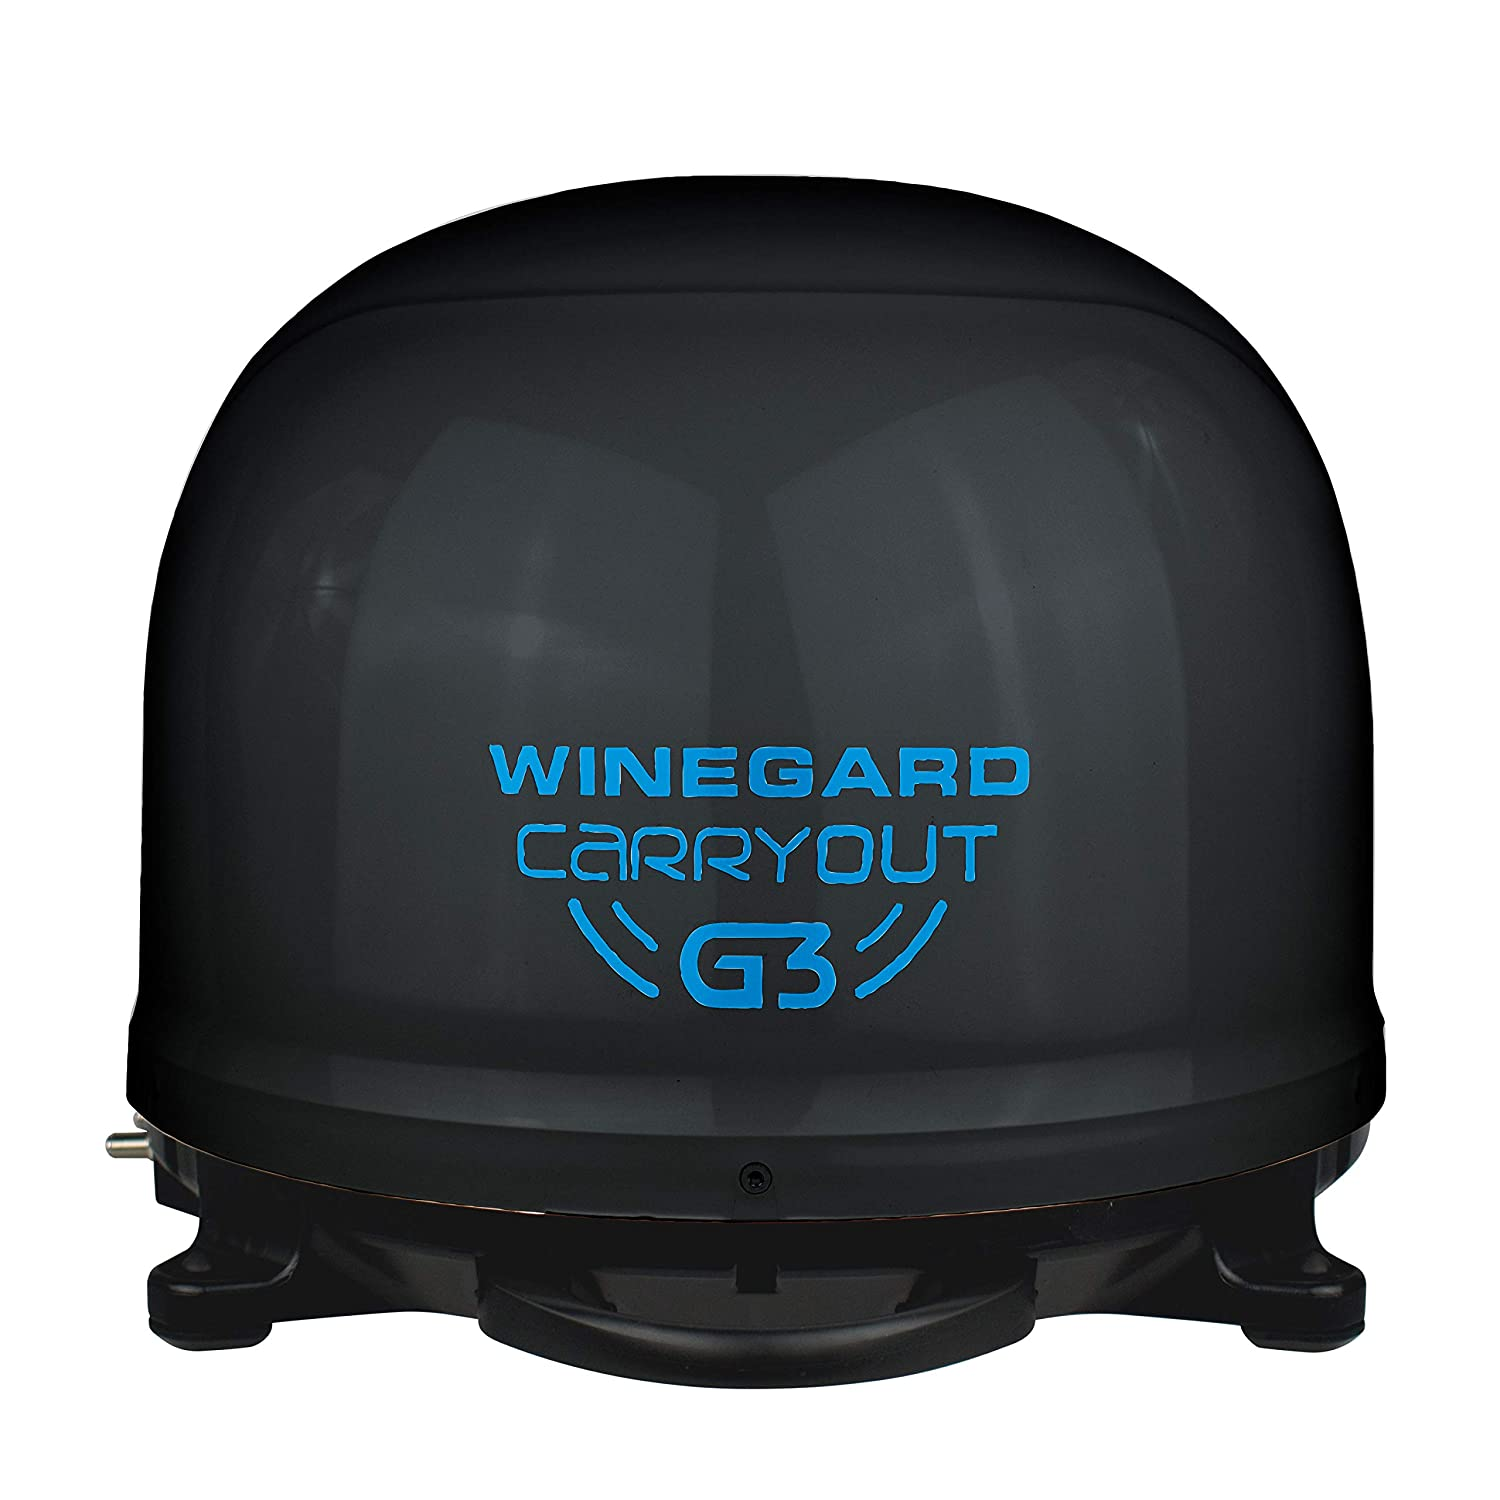 Winegard Company Black GM-9035 Carryout G3 Portable Automatic Satellite Antenna